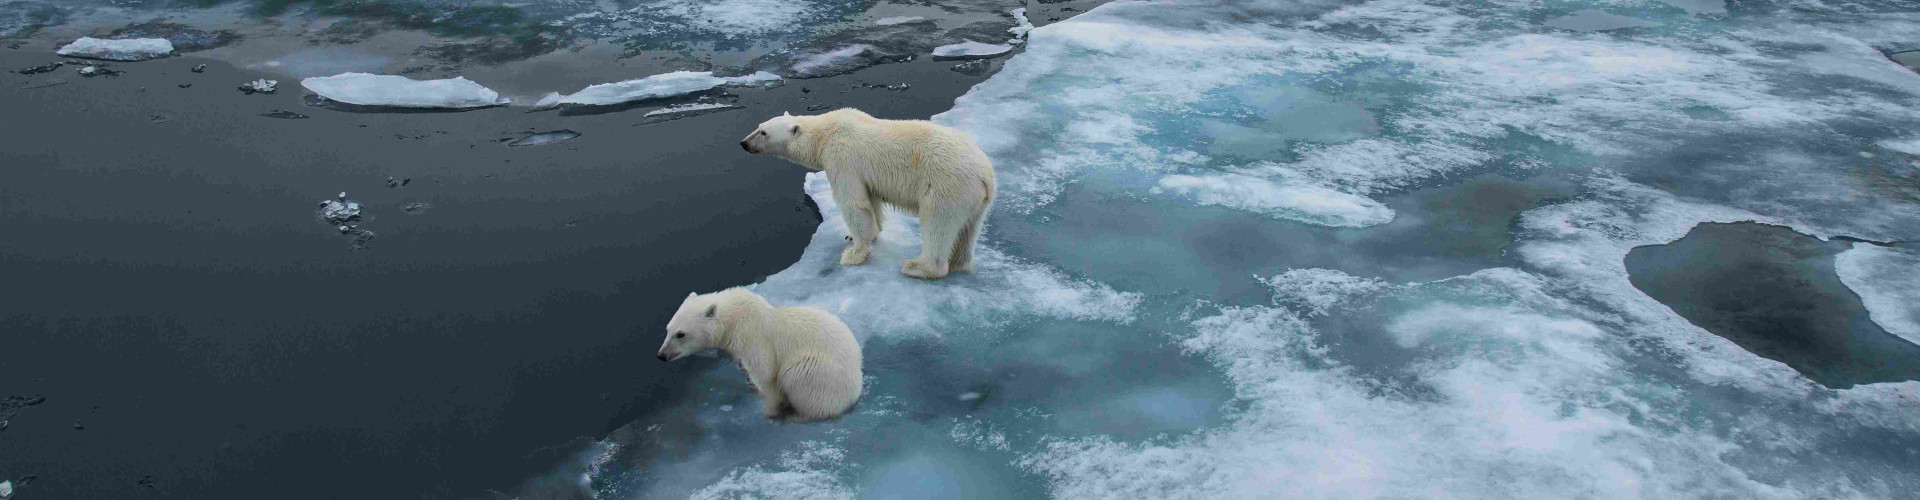 Support an immediate HFO ban in the Arctic Canadian